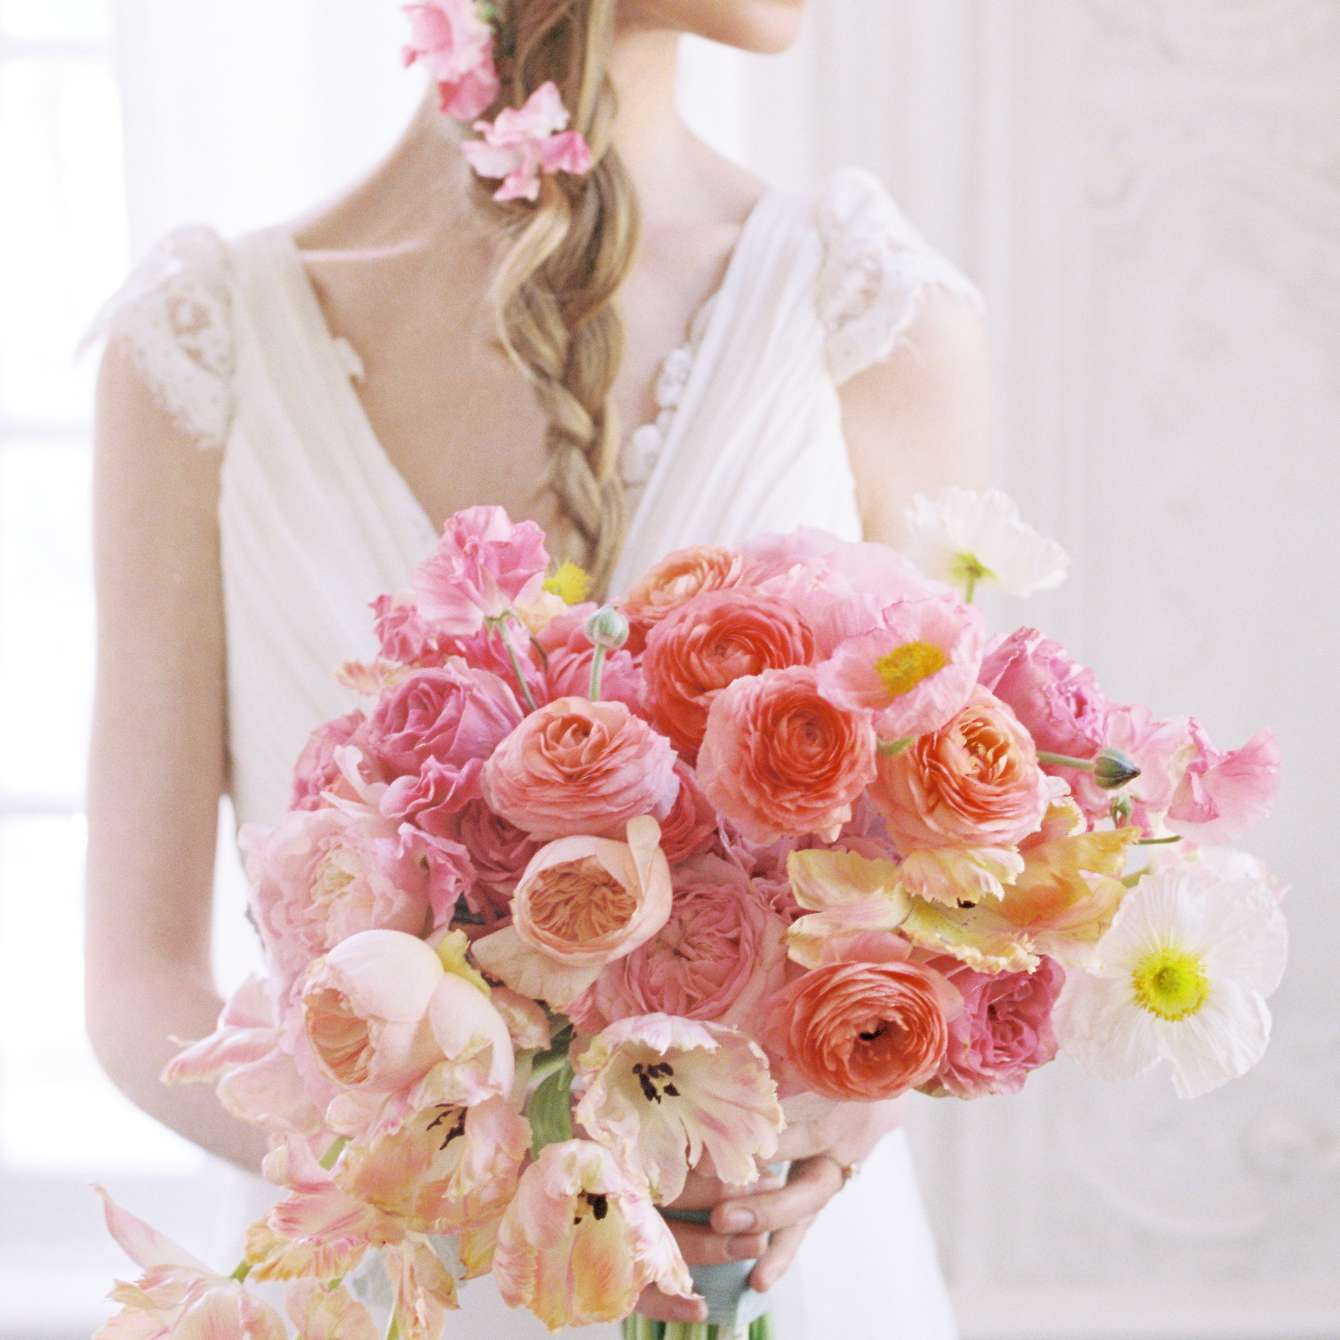 Bride holding a bouquet of parrot tulips, garden roses, ranunculus, poppies, and tweedia in shades of pink and orange